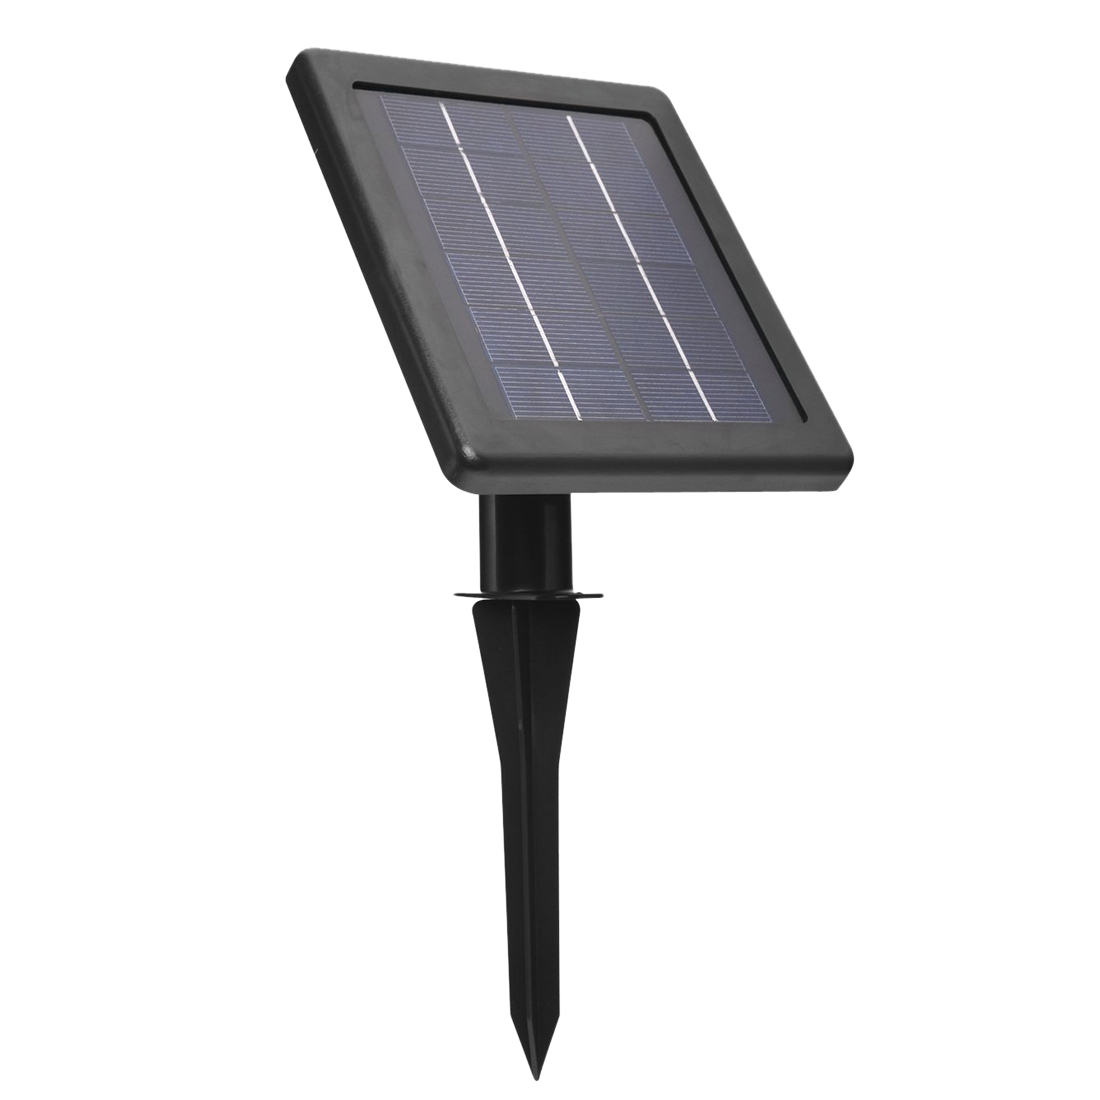 Rechargeable Waterproof Solar Powered 30 LED Spot Light White Lamp with Lithium Battery Inside for Lawn, Garden, Road, Hotel, et youoklight 0 5w 3 led white light mini waterproof solar powered fence garden lamp black